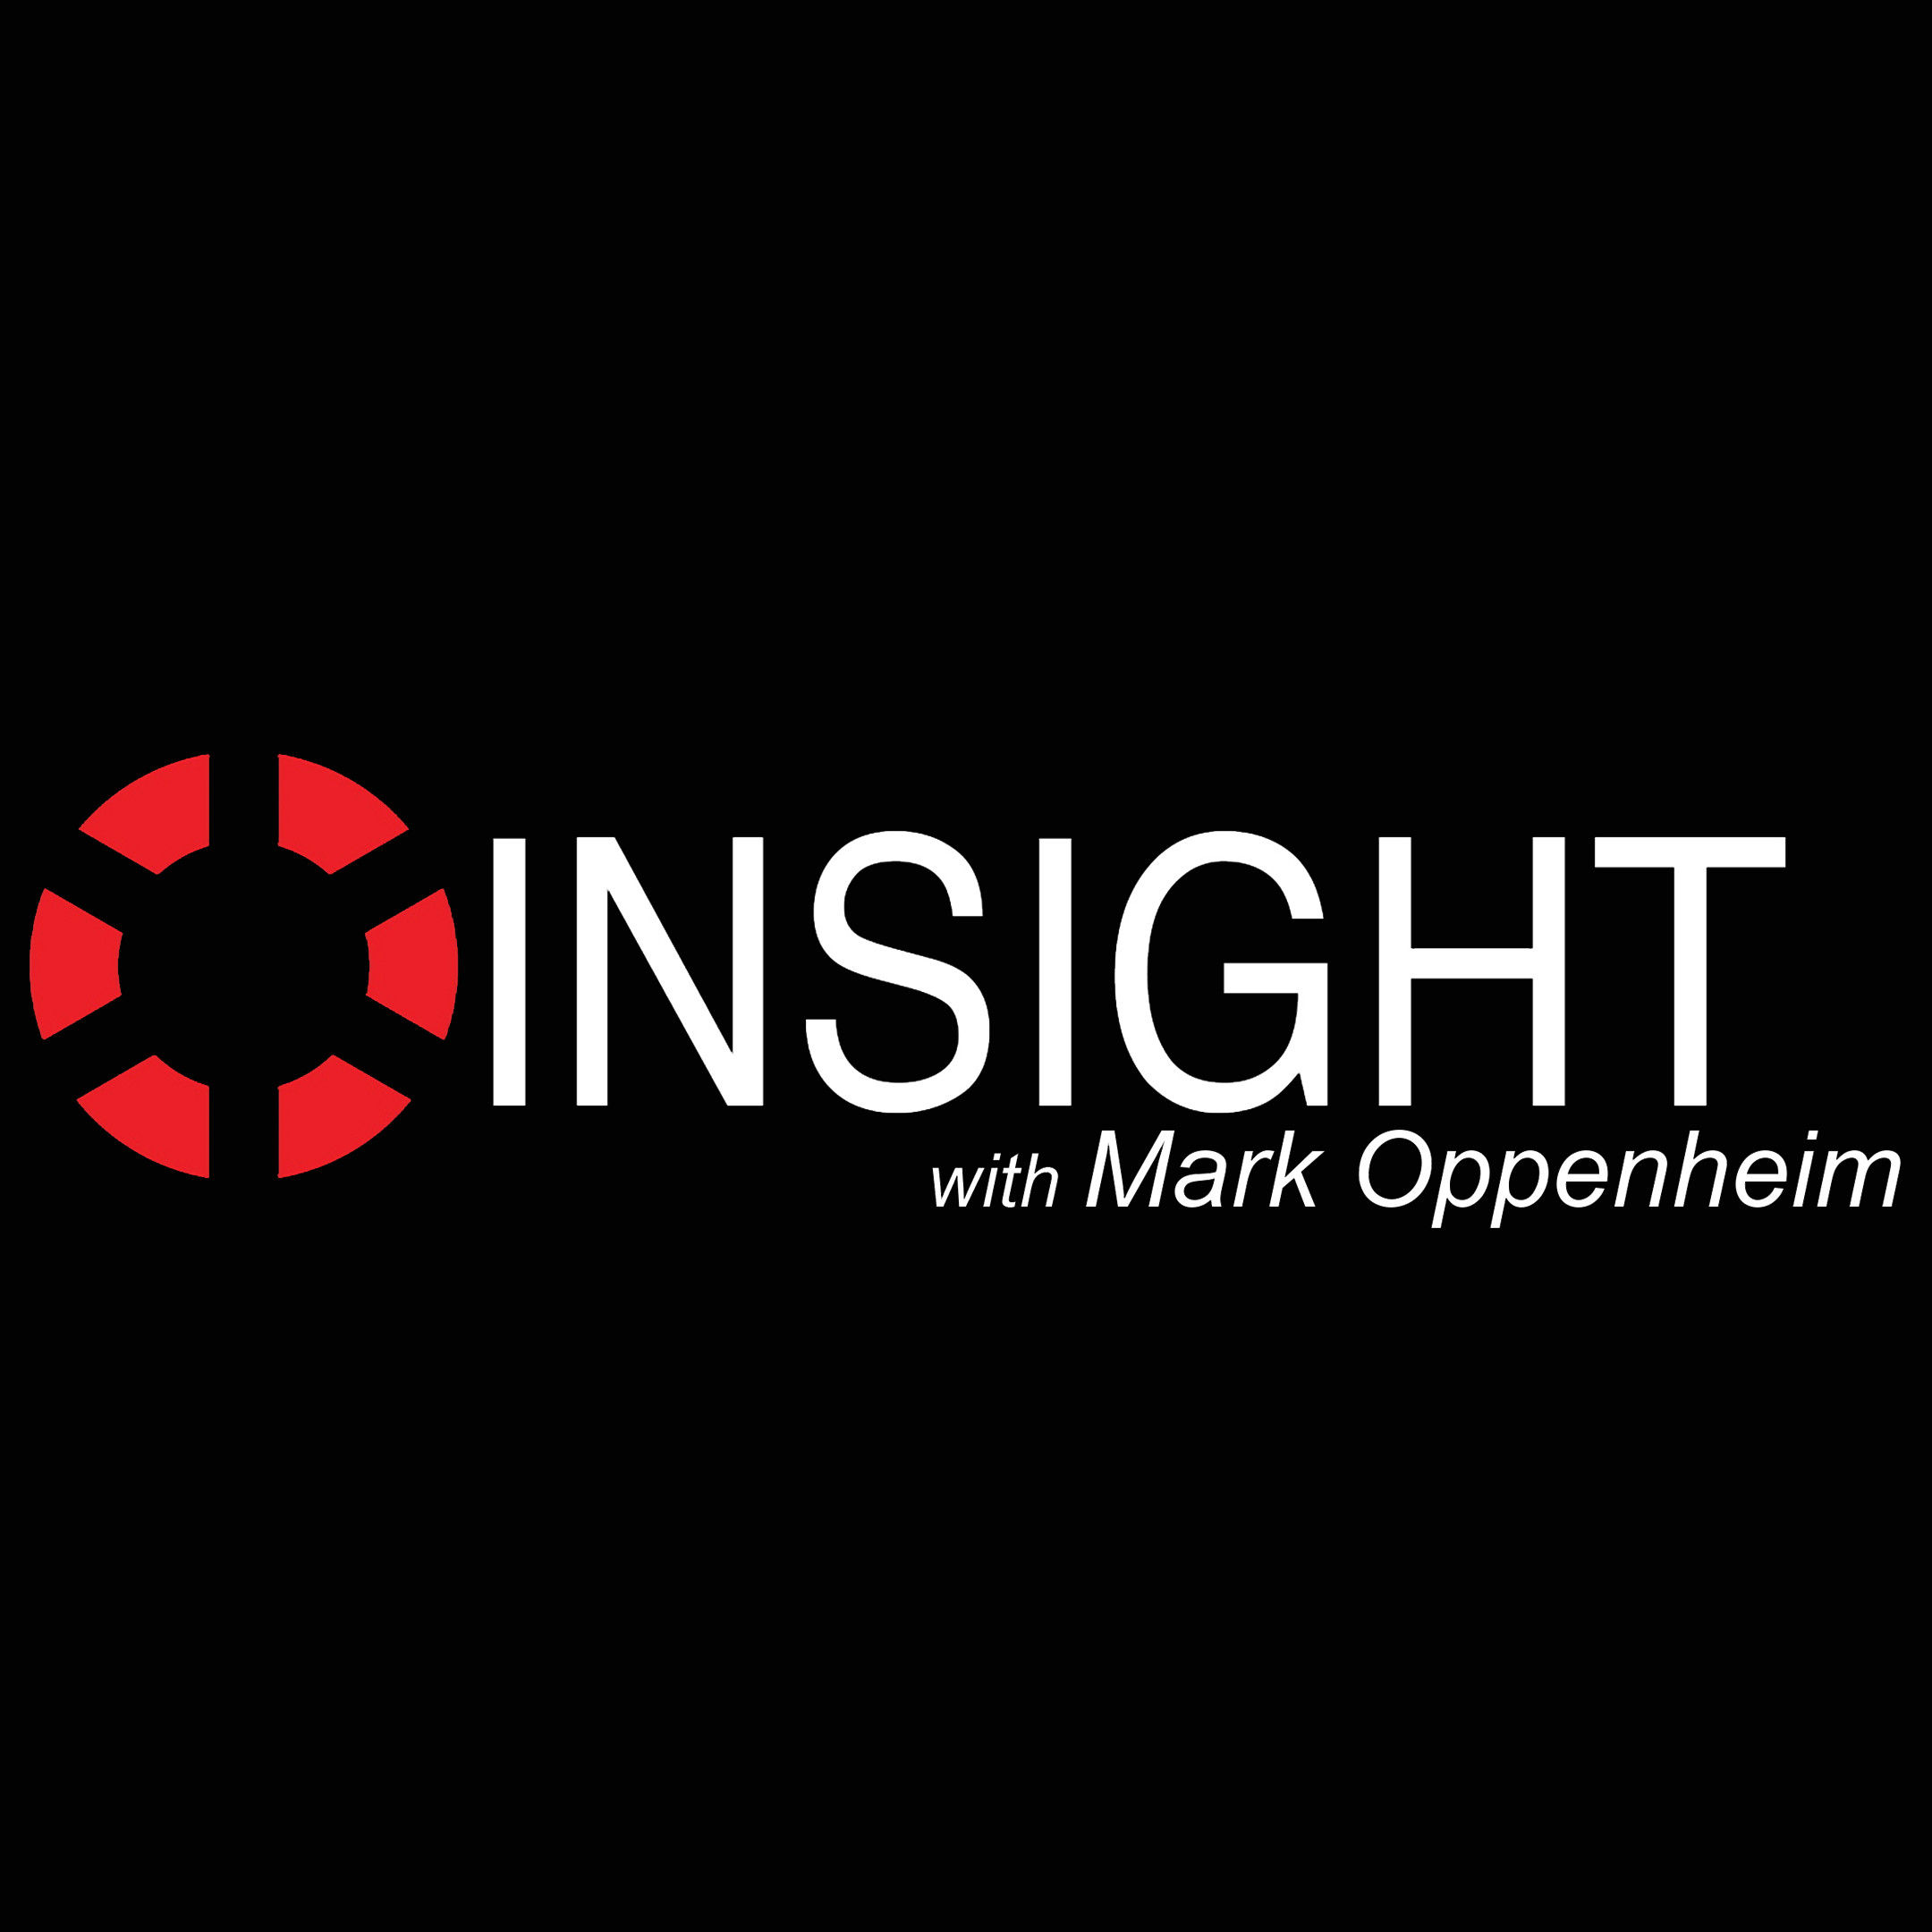 INSIGHT with Mark Oppenheim